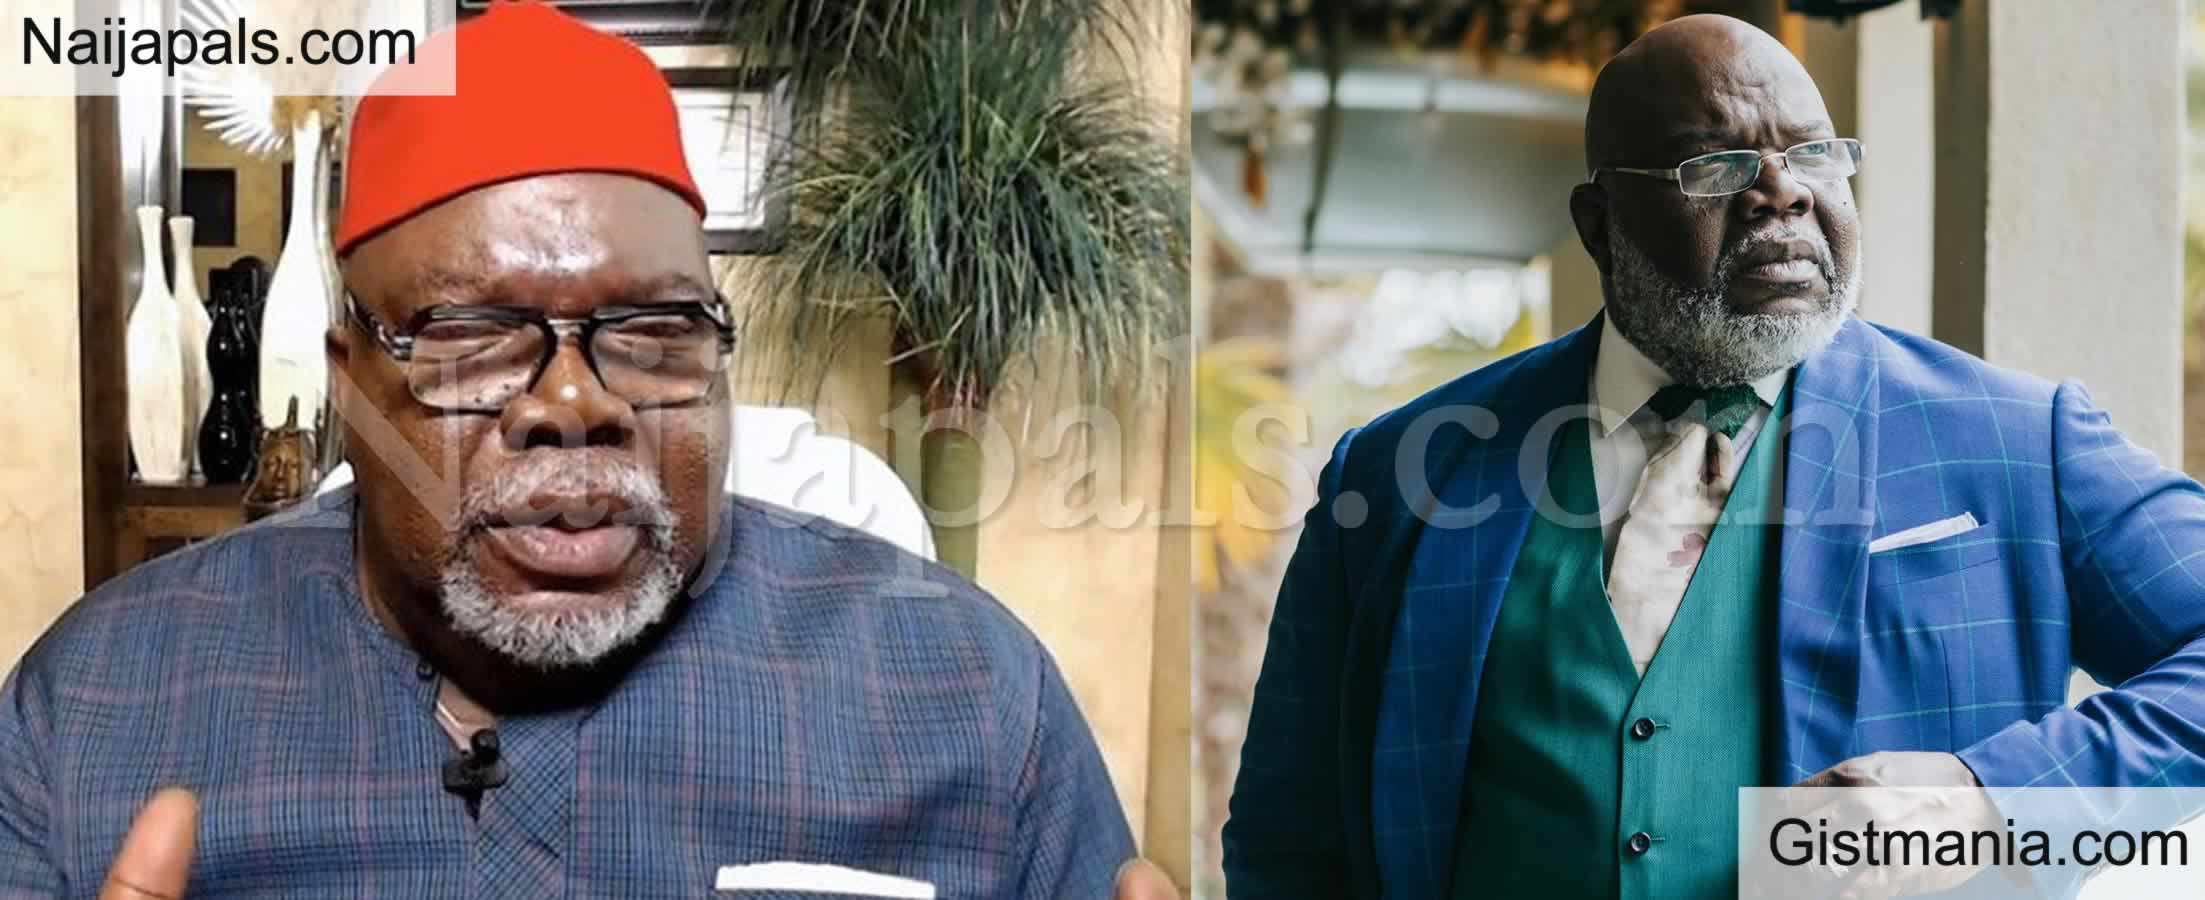 <img alt='.' class='lazyload' data-src='https://img.gistmania.com/emot/comment.gif' /> My Ancestors Were Igbos - <b>American Evangelist, Bishop T.D Jakes Confirms He is a Nigerian</b>